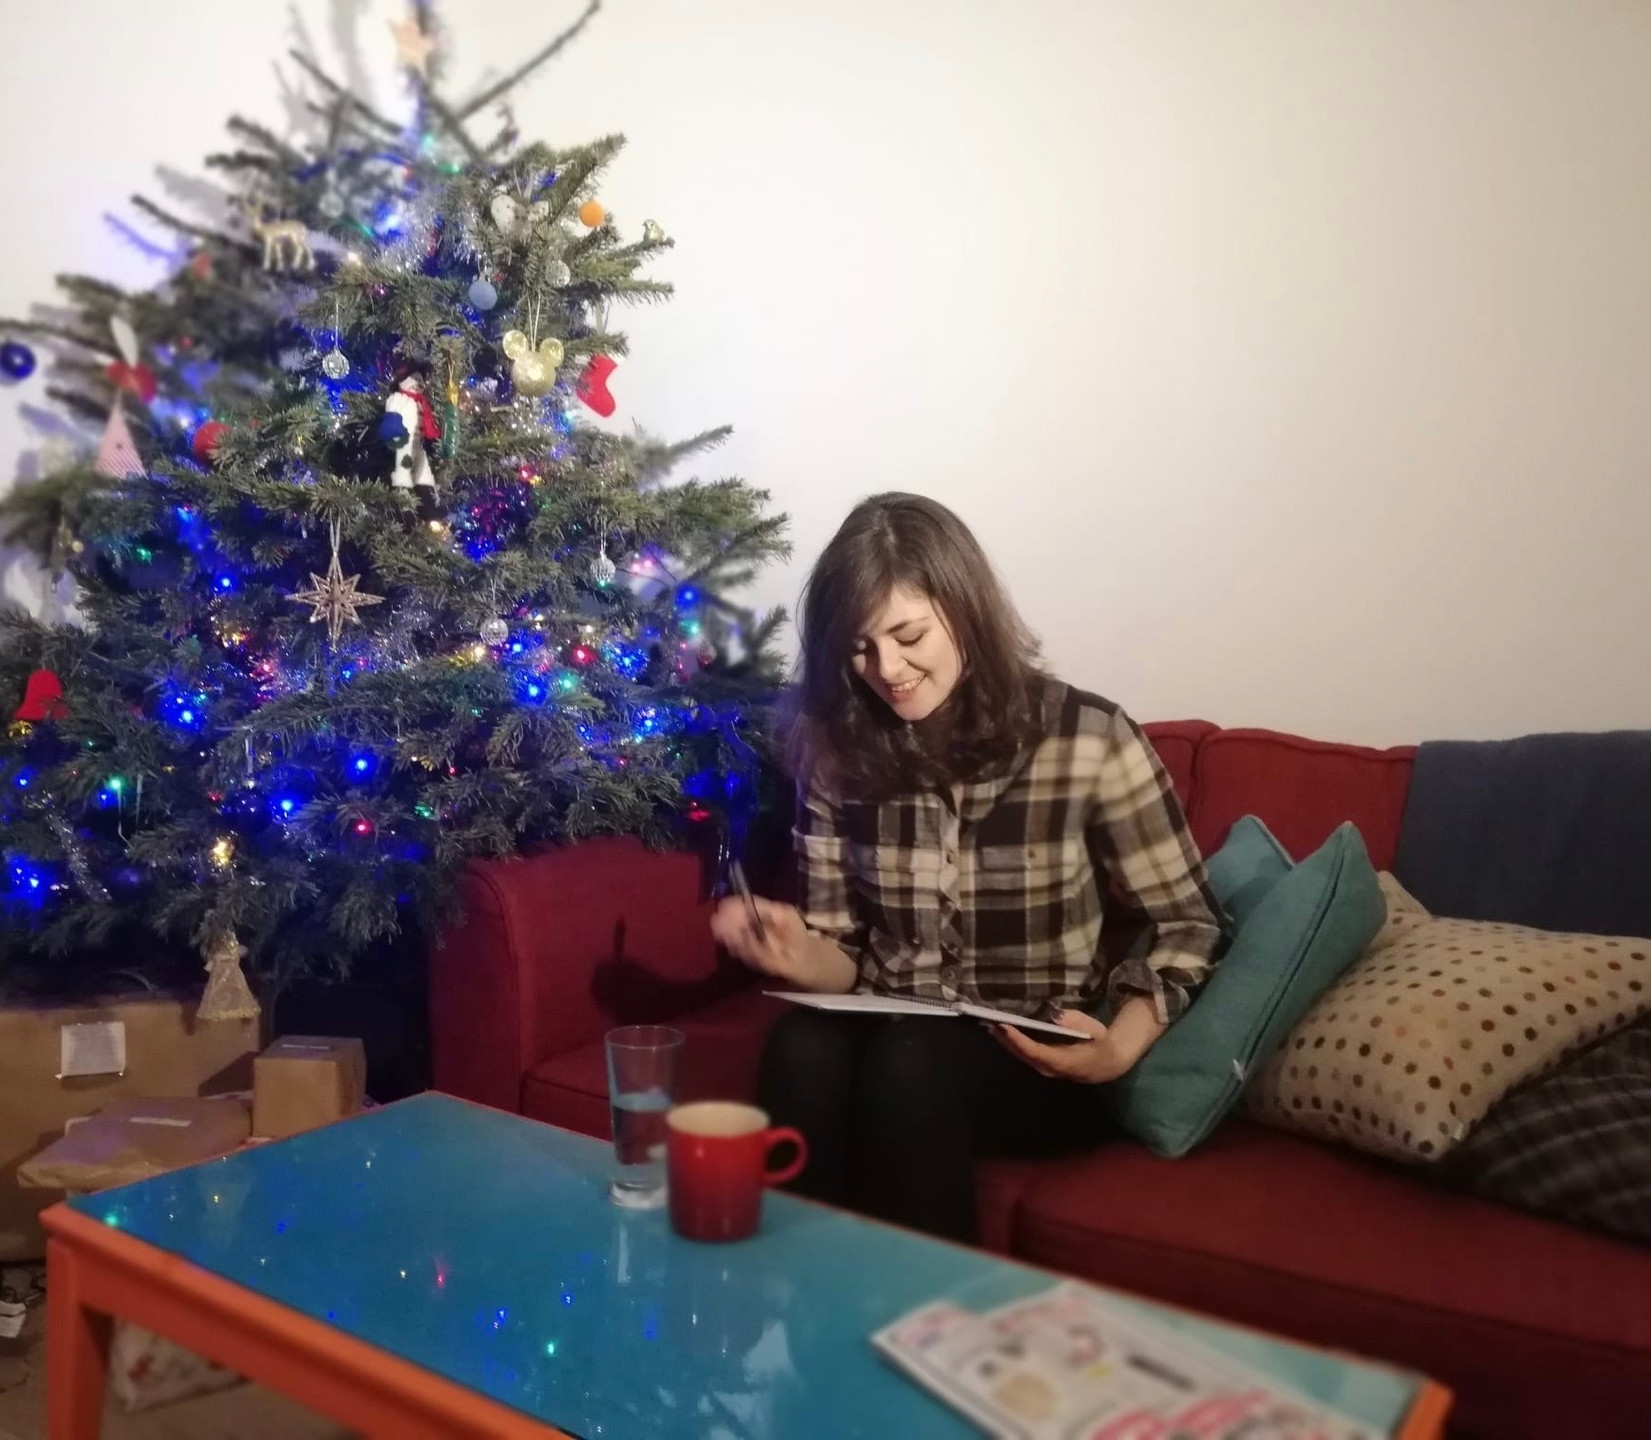 Hannah Duncan female copywriter in a green checked shirt, sitting on a red sofa, with a decorated Christmas tree writing jokes, blue table, red mug